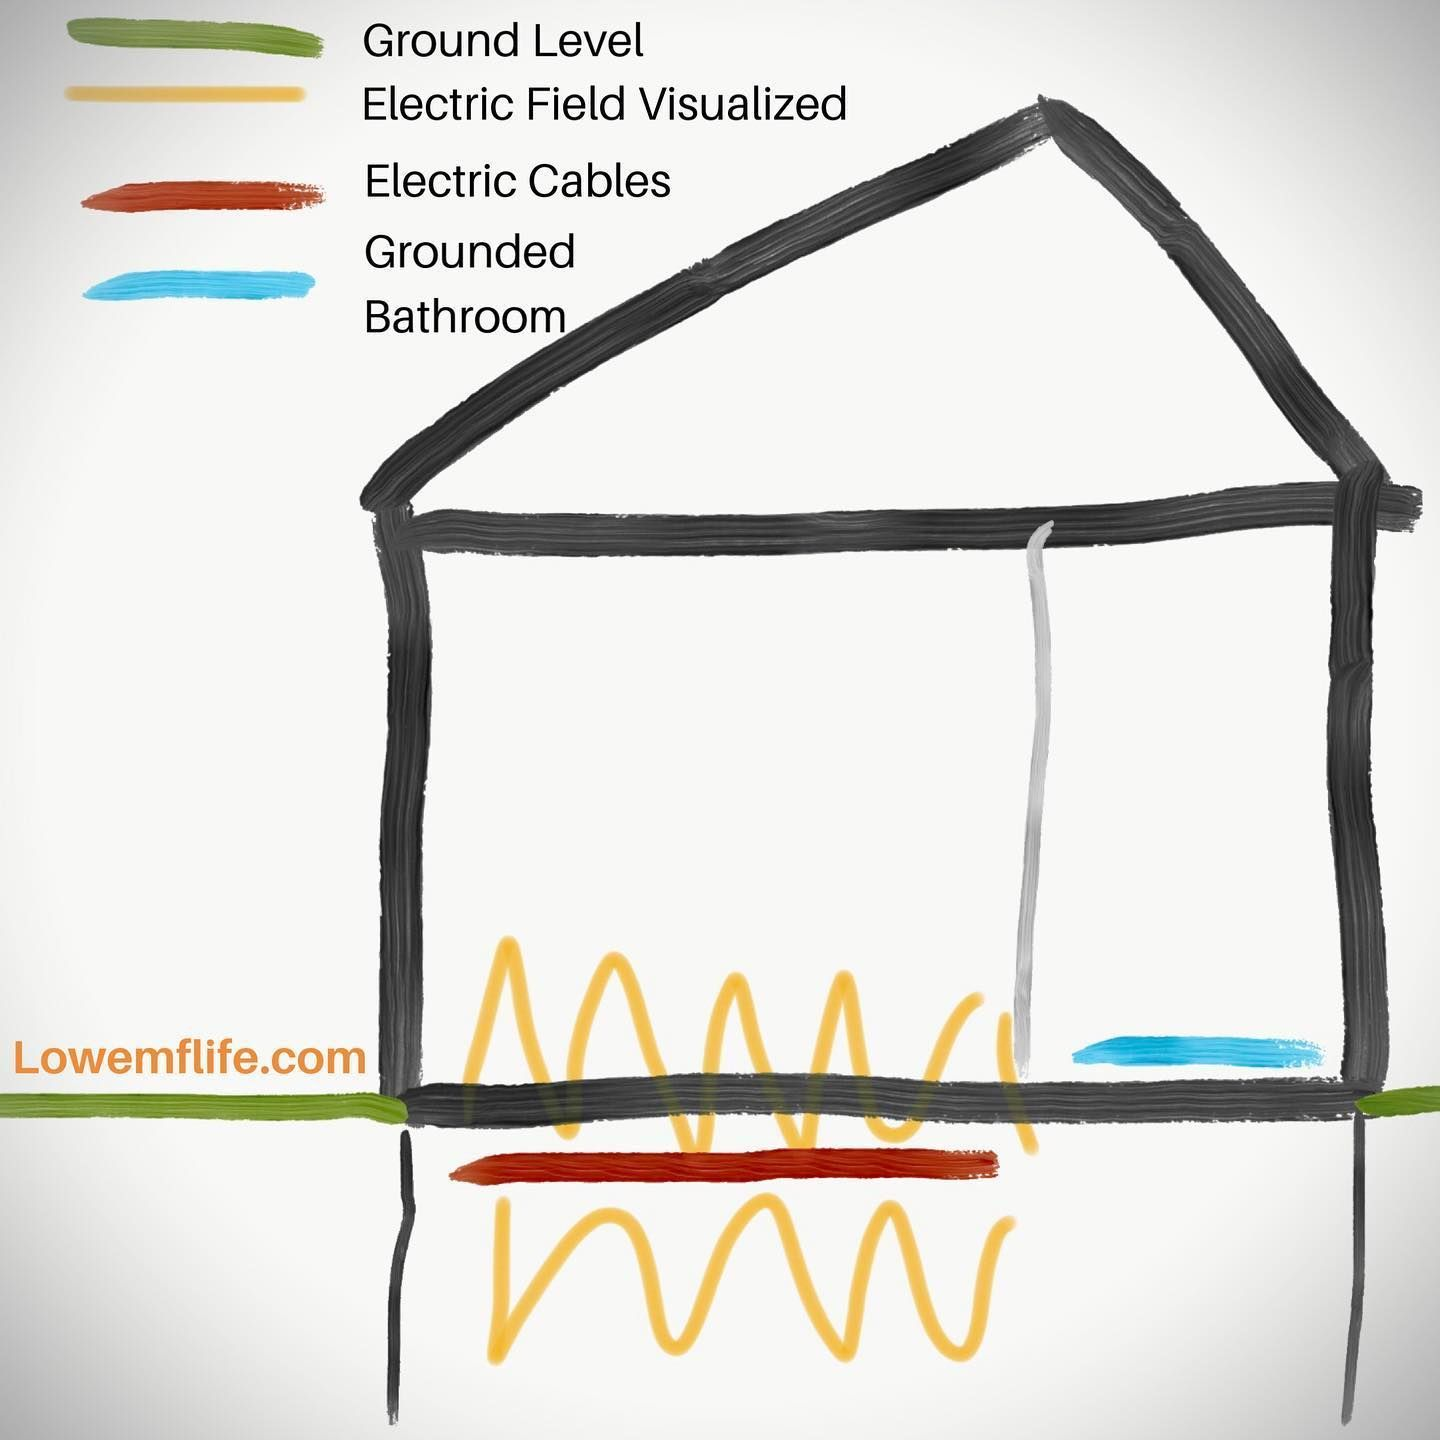 I Made This Visualisation Of A Average Home Or Houseto Show That Often Times Even People That Spend A Lot Of Time On The Groundfloor Are Exposed High El In 2020